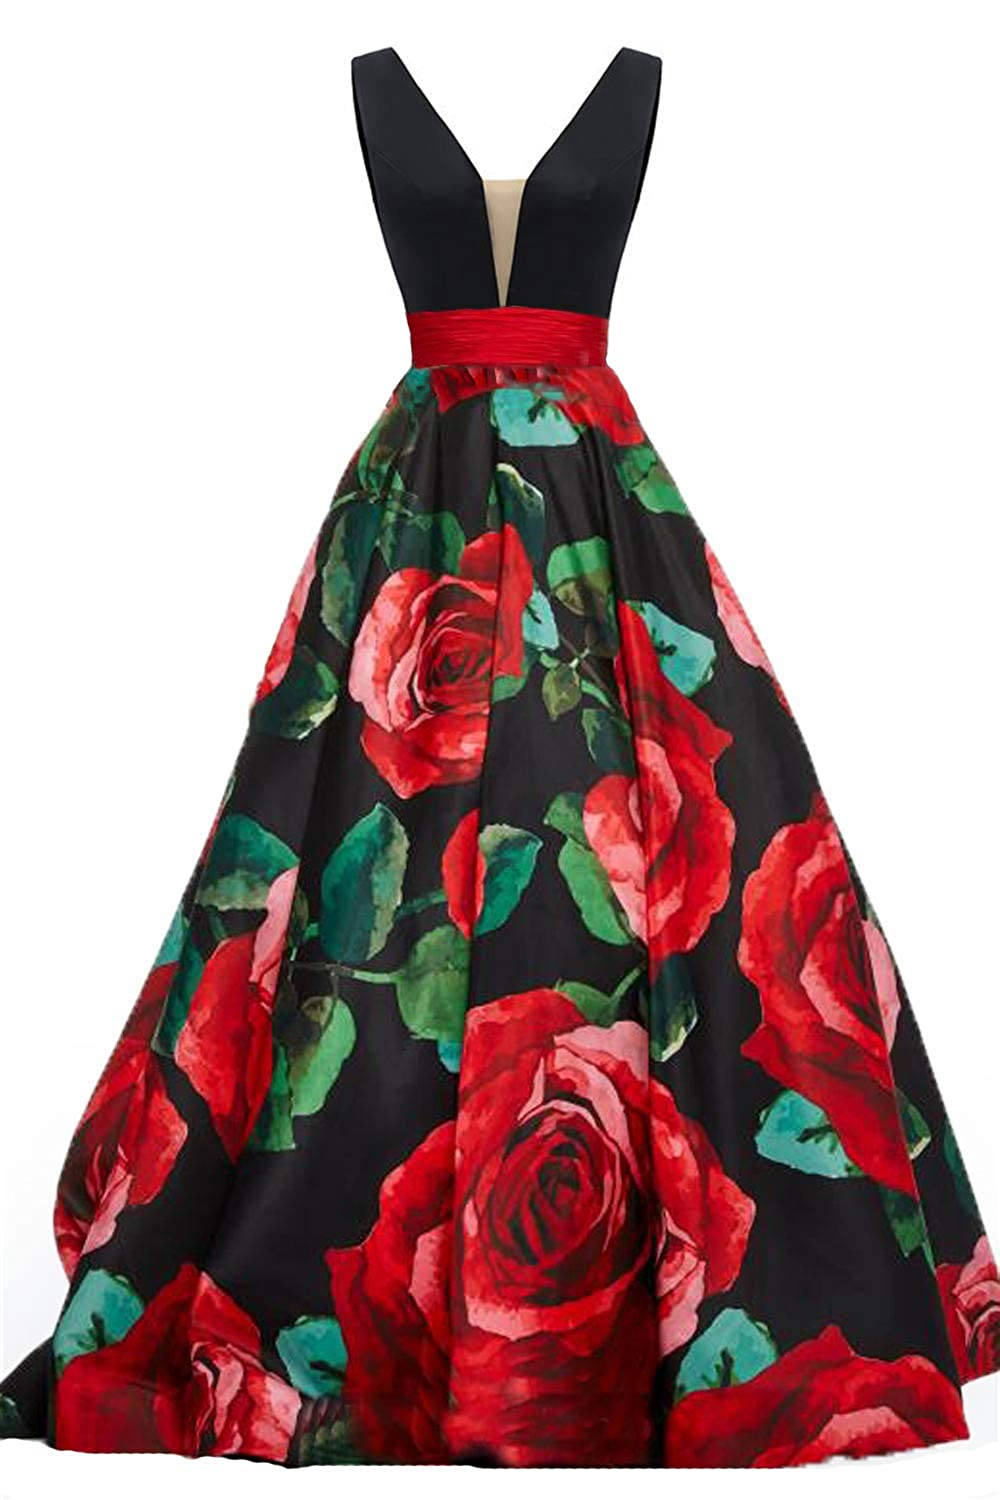 Black4 Dydsz Long Evening Prom Dresses for Women Formal Gown with Pockets Print Floral D295